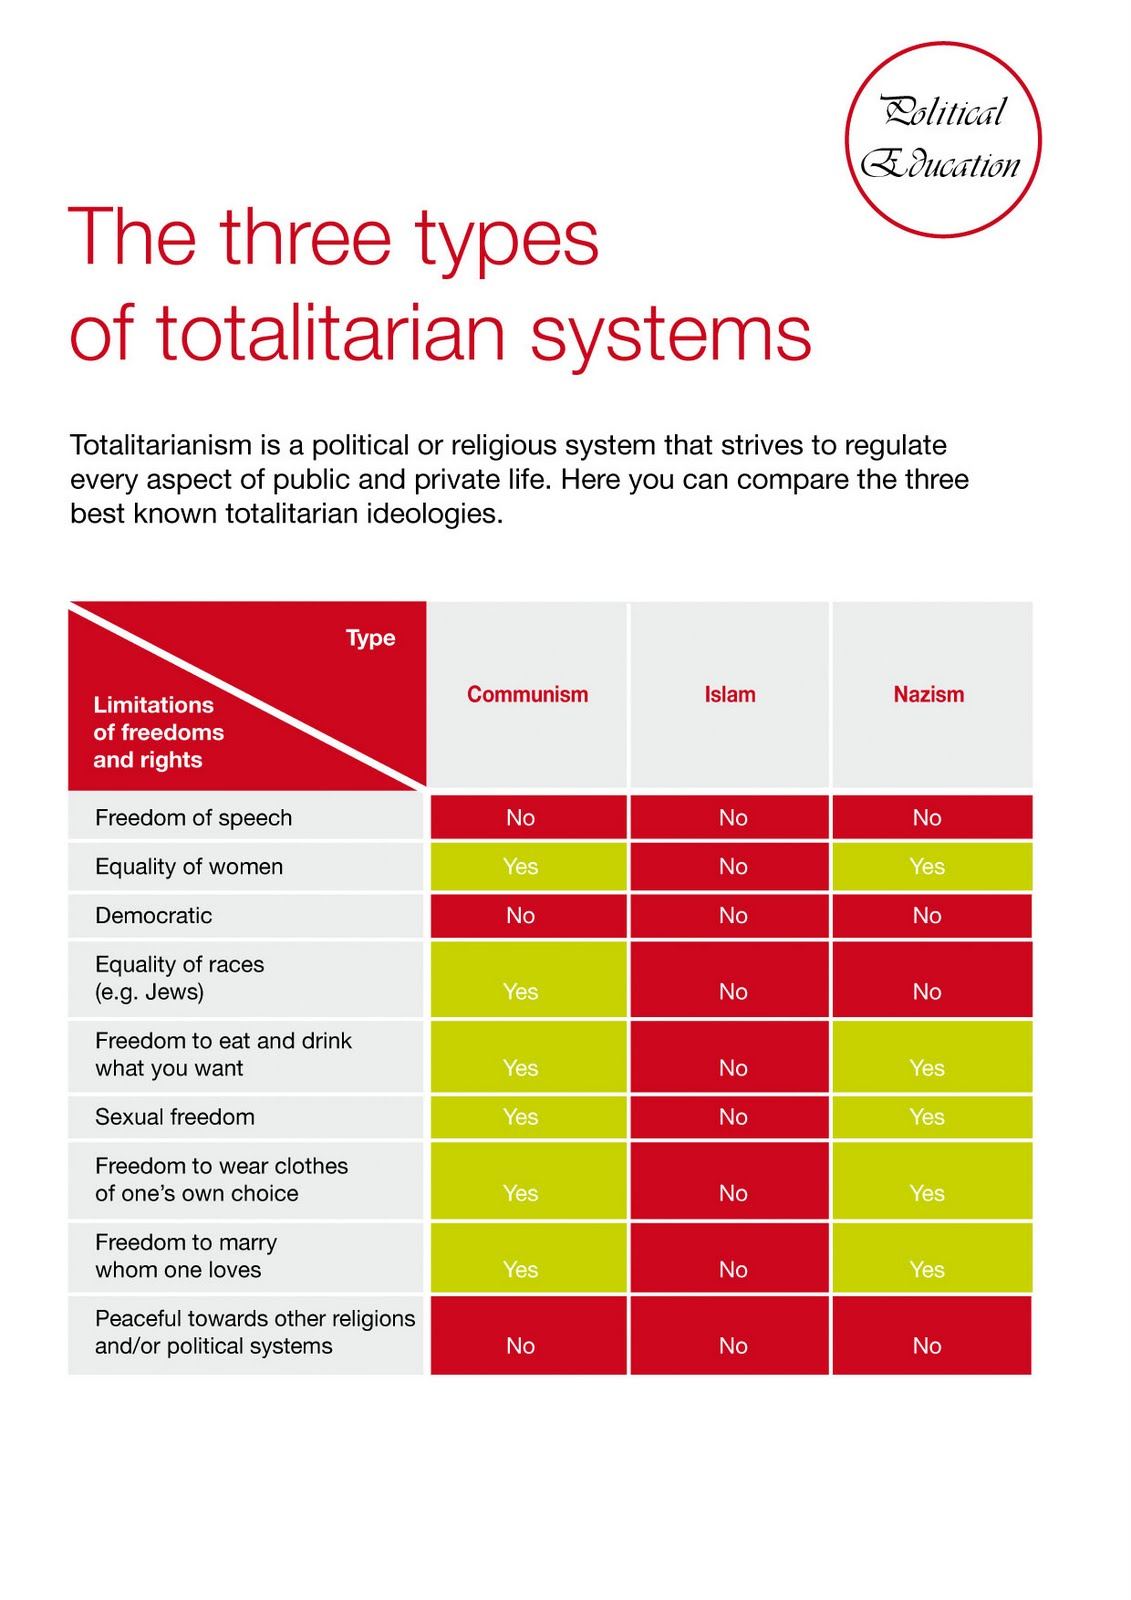 THE THREE TYPES OF TOTALITARIAN SYSTEMS